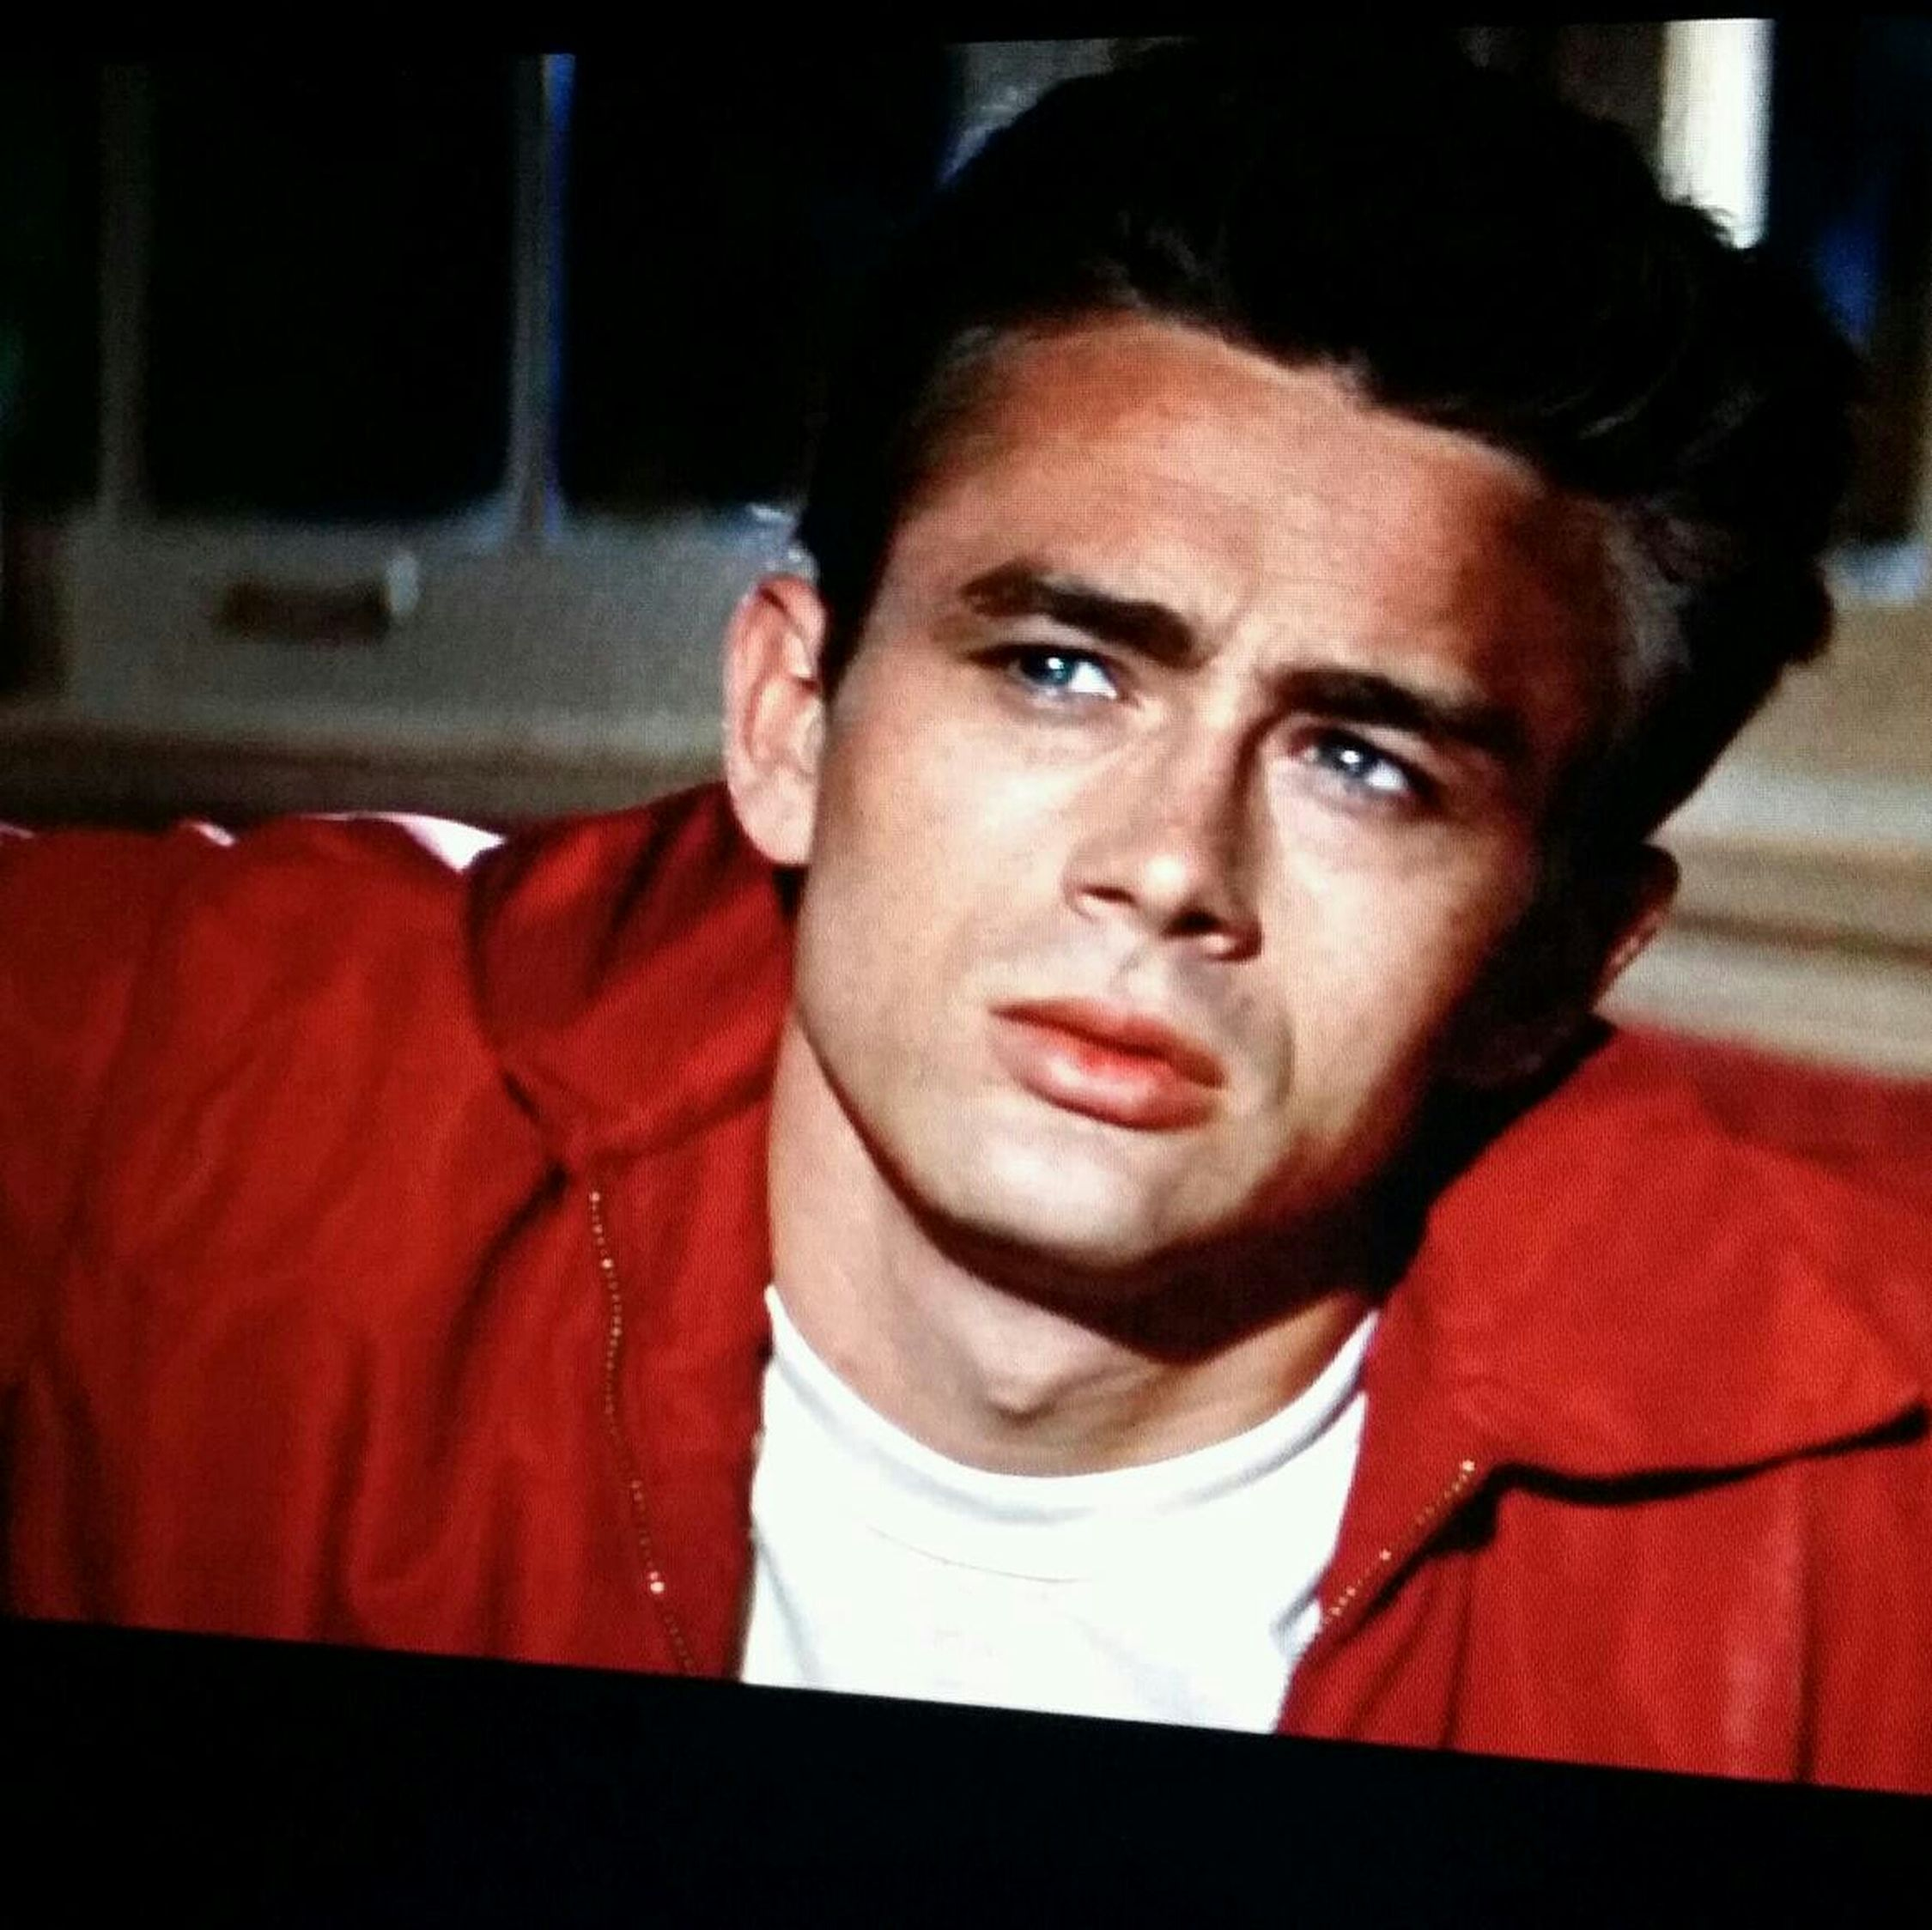 Old MOVIE Rebel Without A Cause you gotta love James Dean